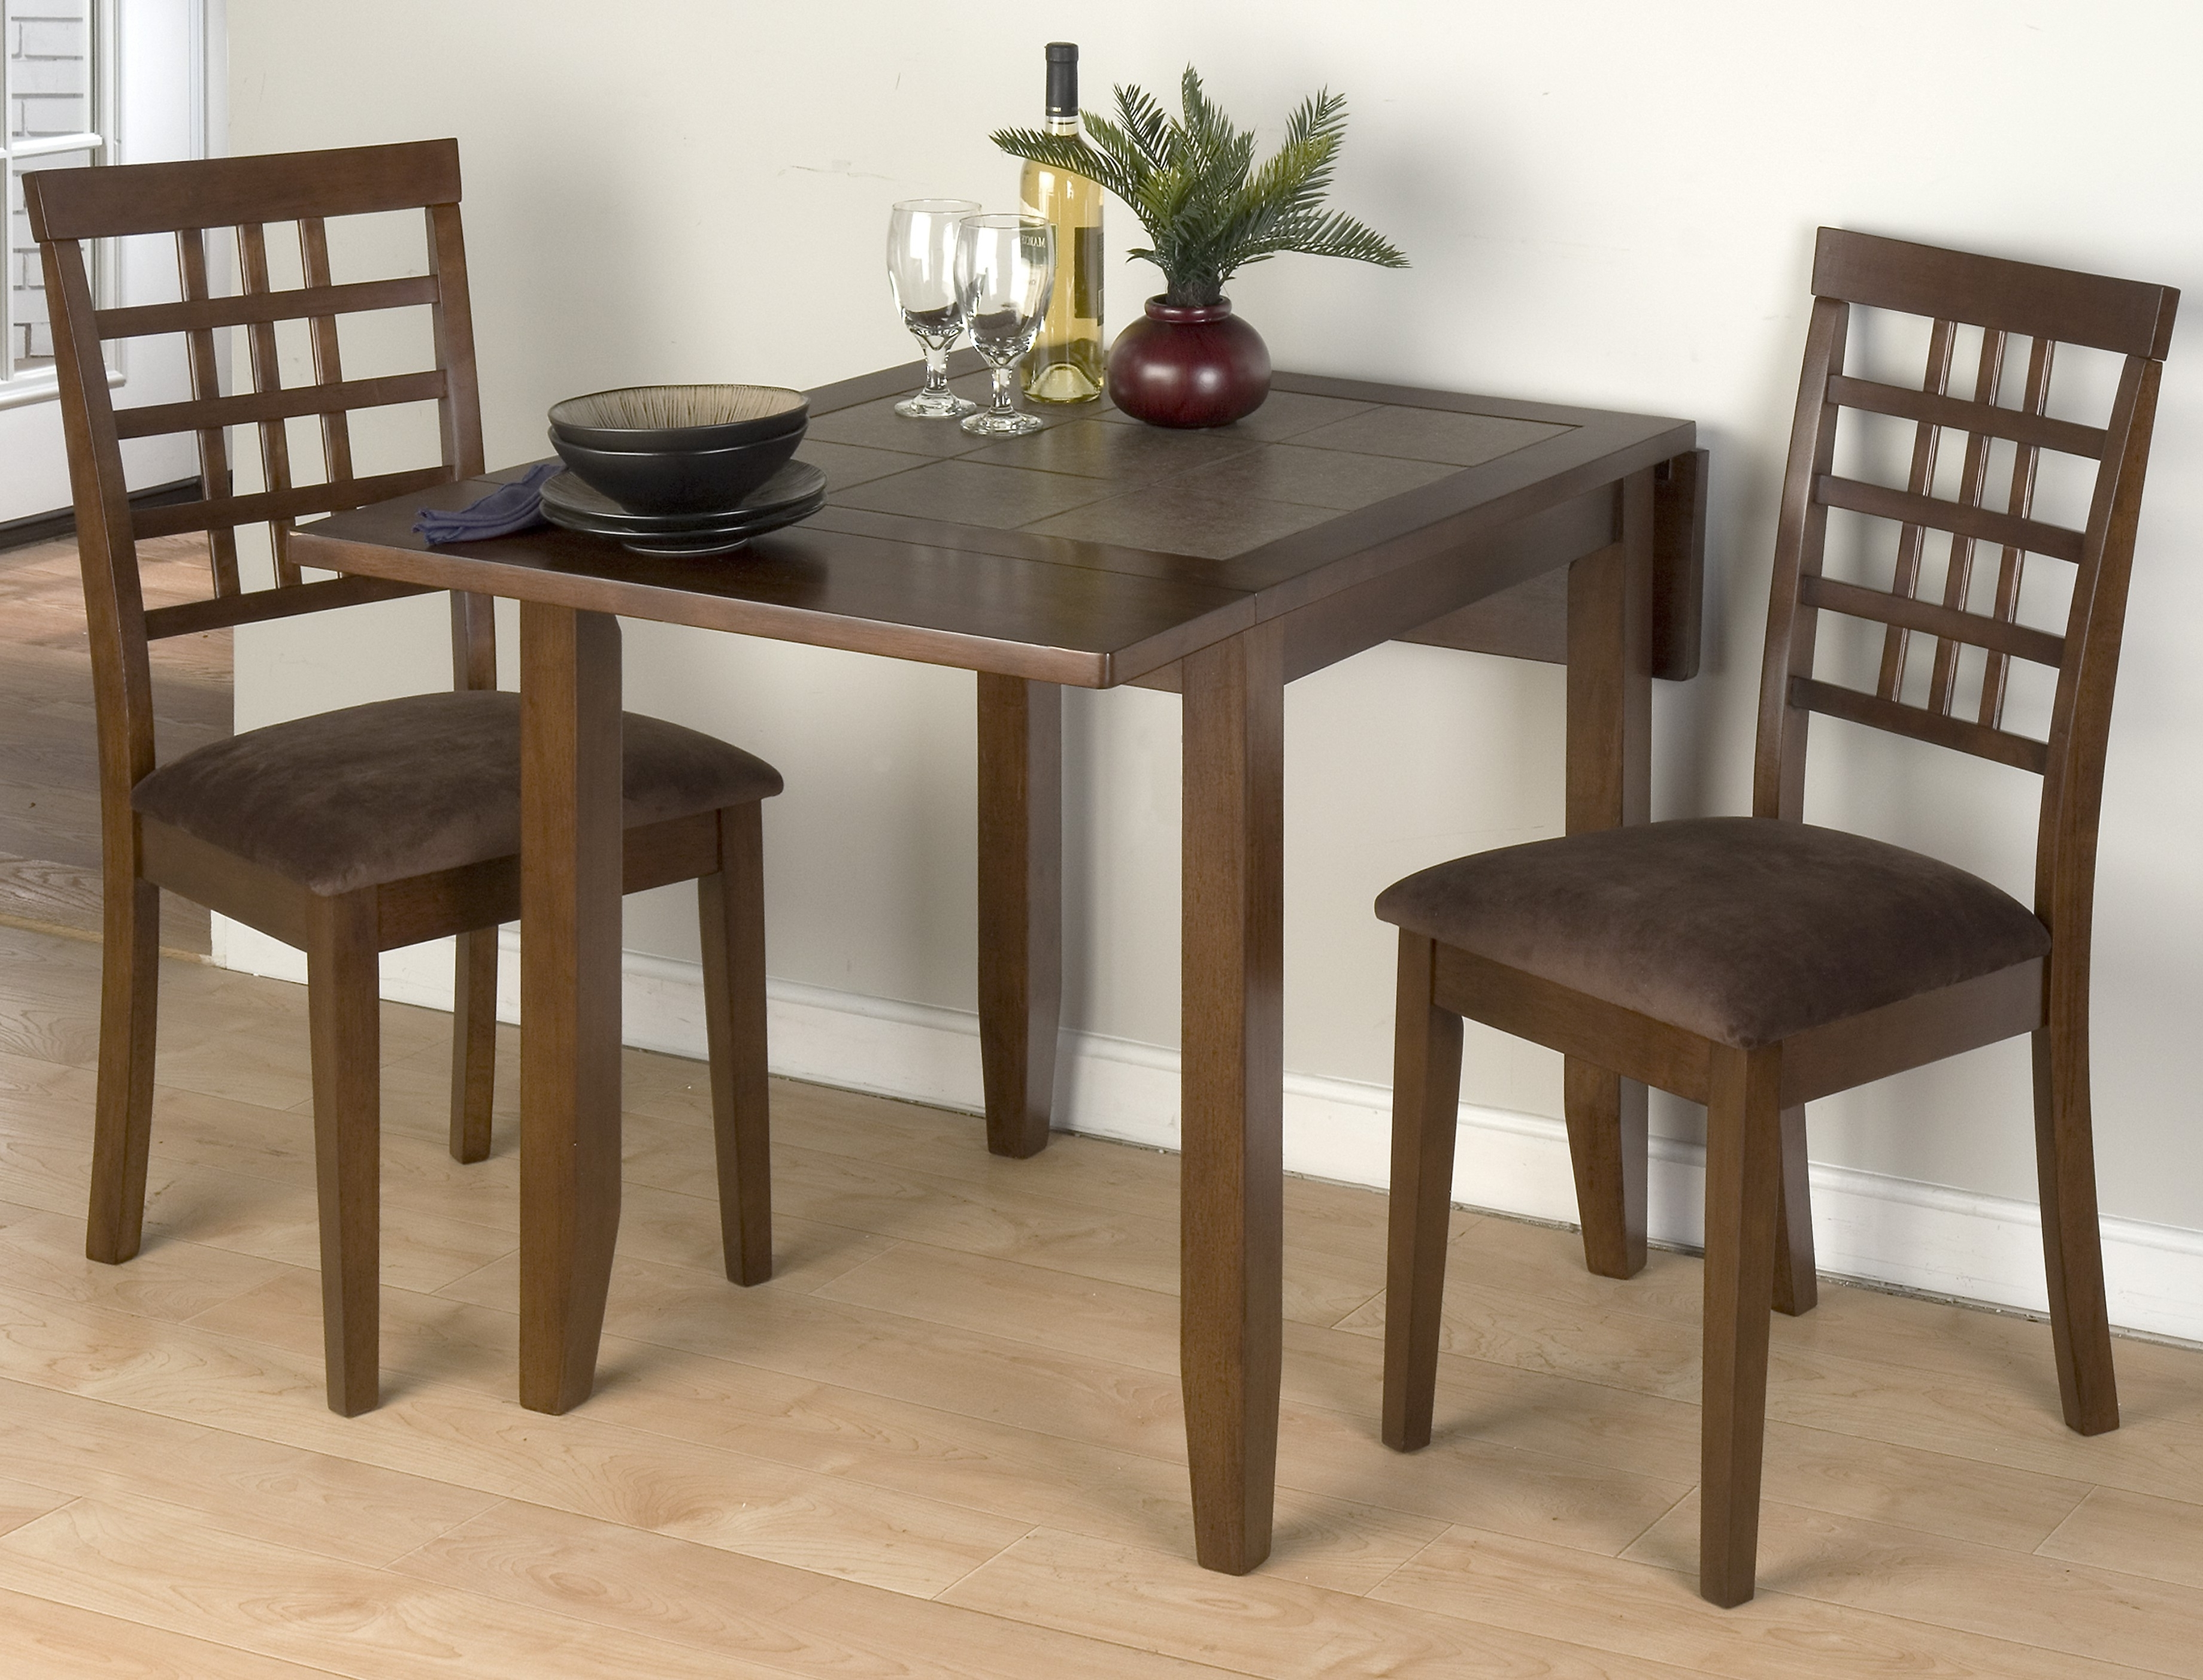 Extendable Dining Tables For Small Spaces Inspirational Rustic With Well Known Extendable Dining Tables Sets (View 21 of 25)